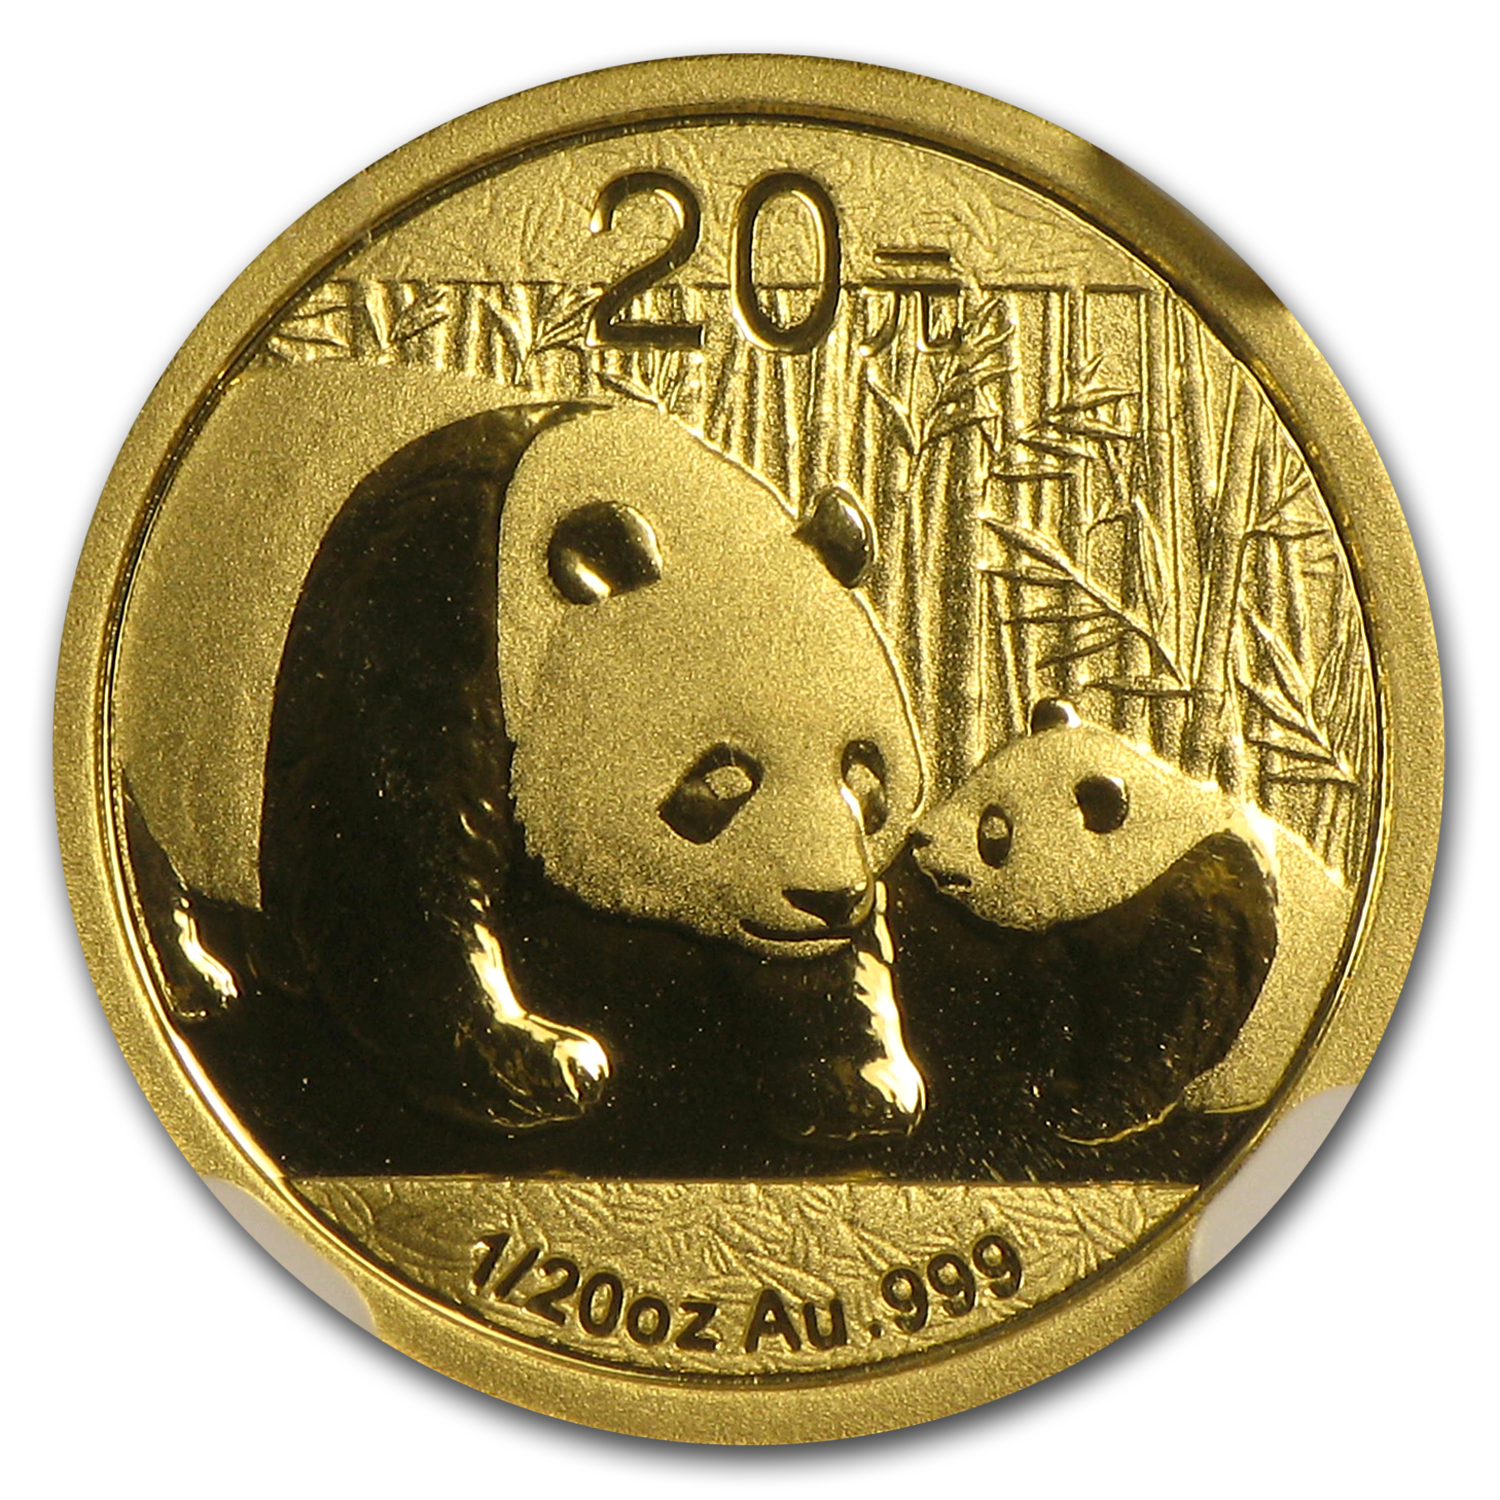 2011 China 1/20 oz Gold Panda MS-70 NGC